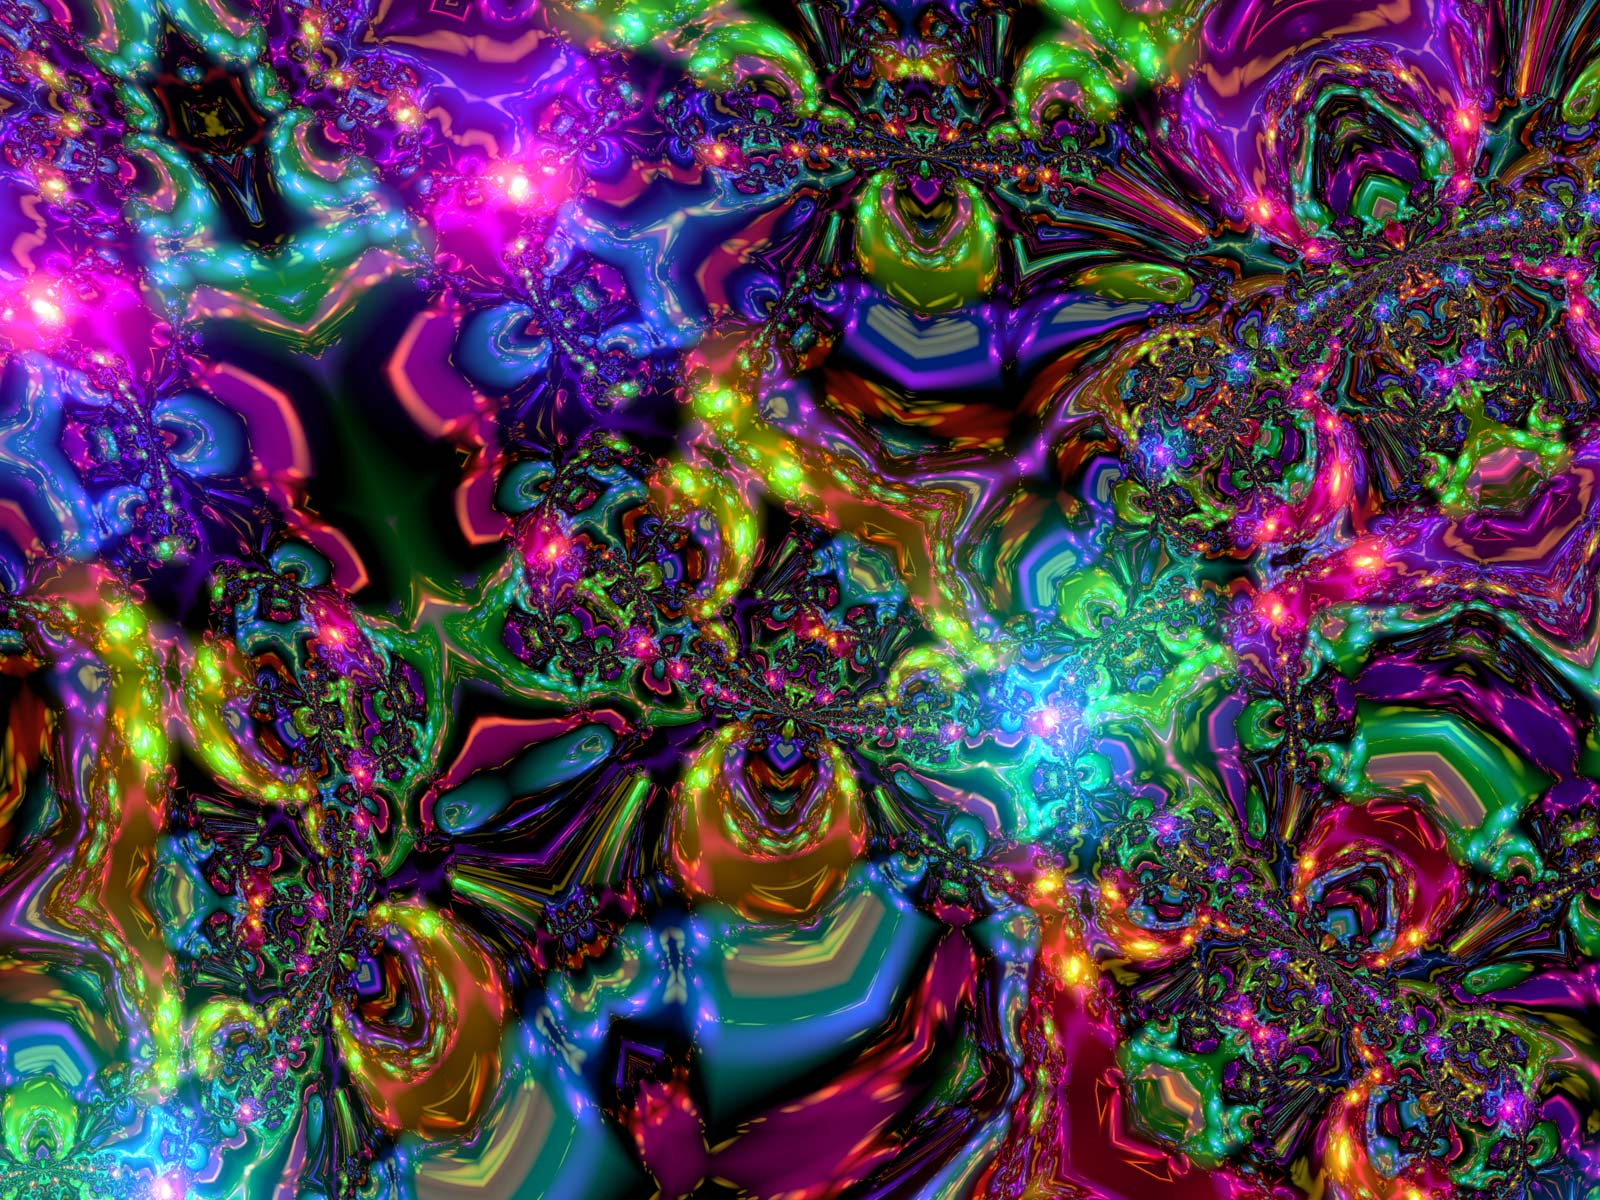 Crazy Cool Backgrounds HD wallpaper background 1600x1200